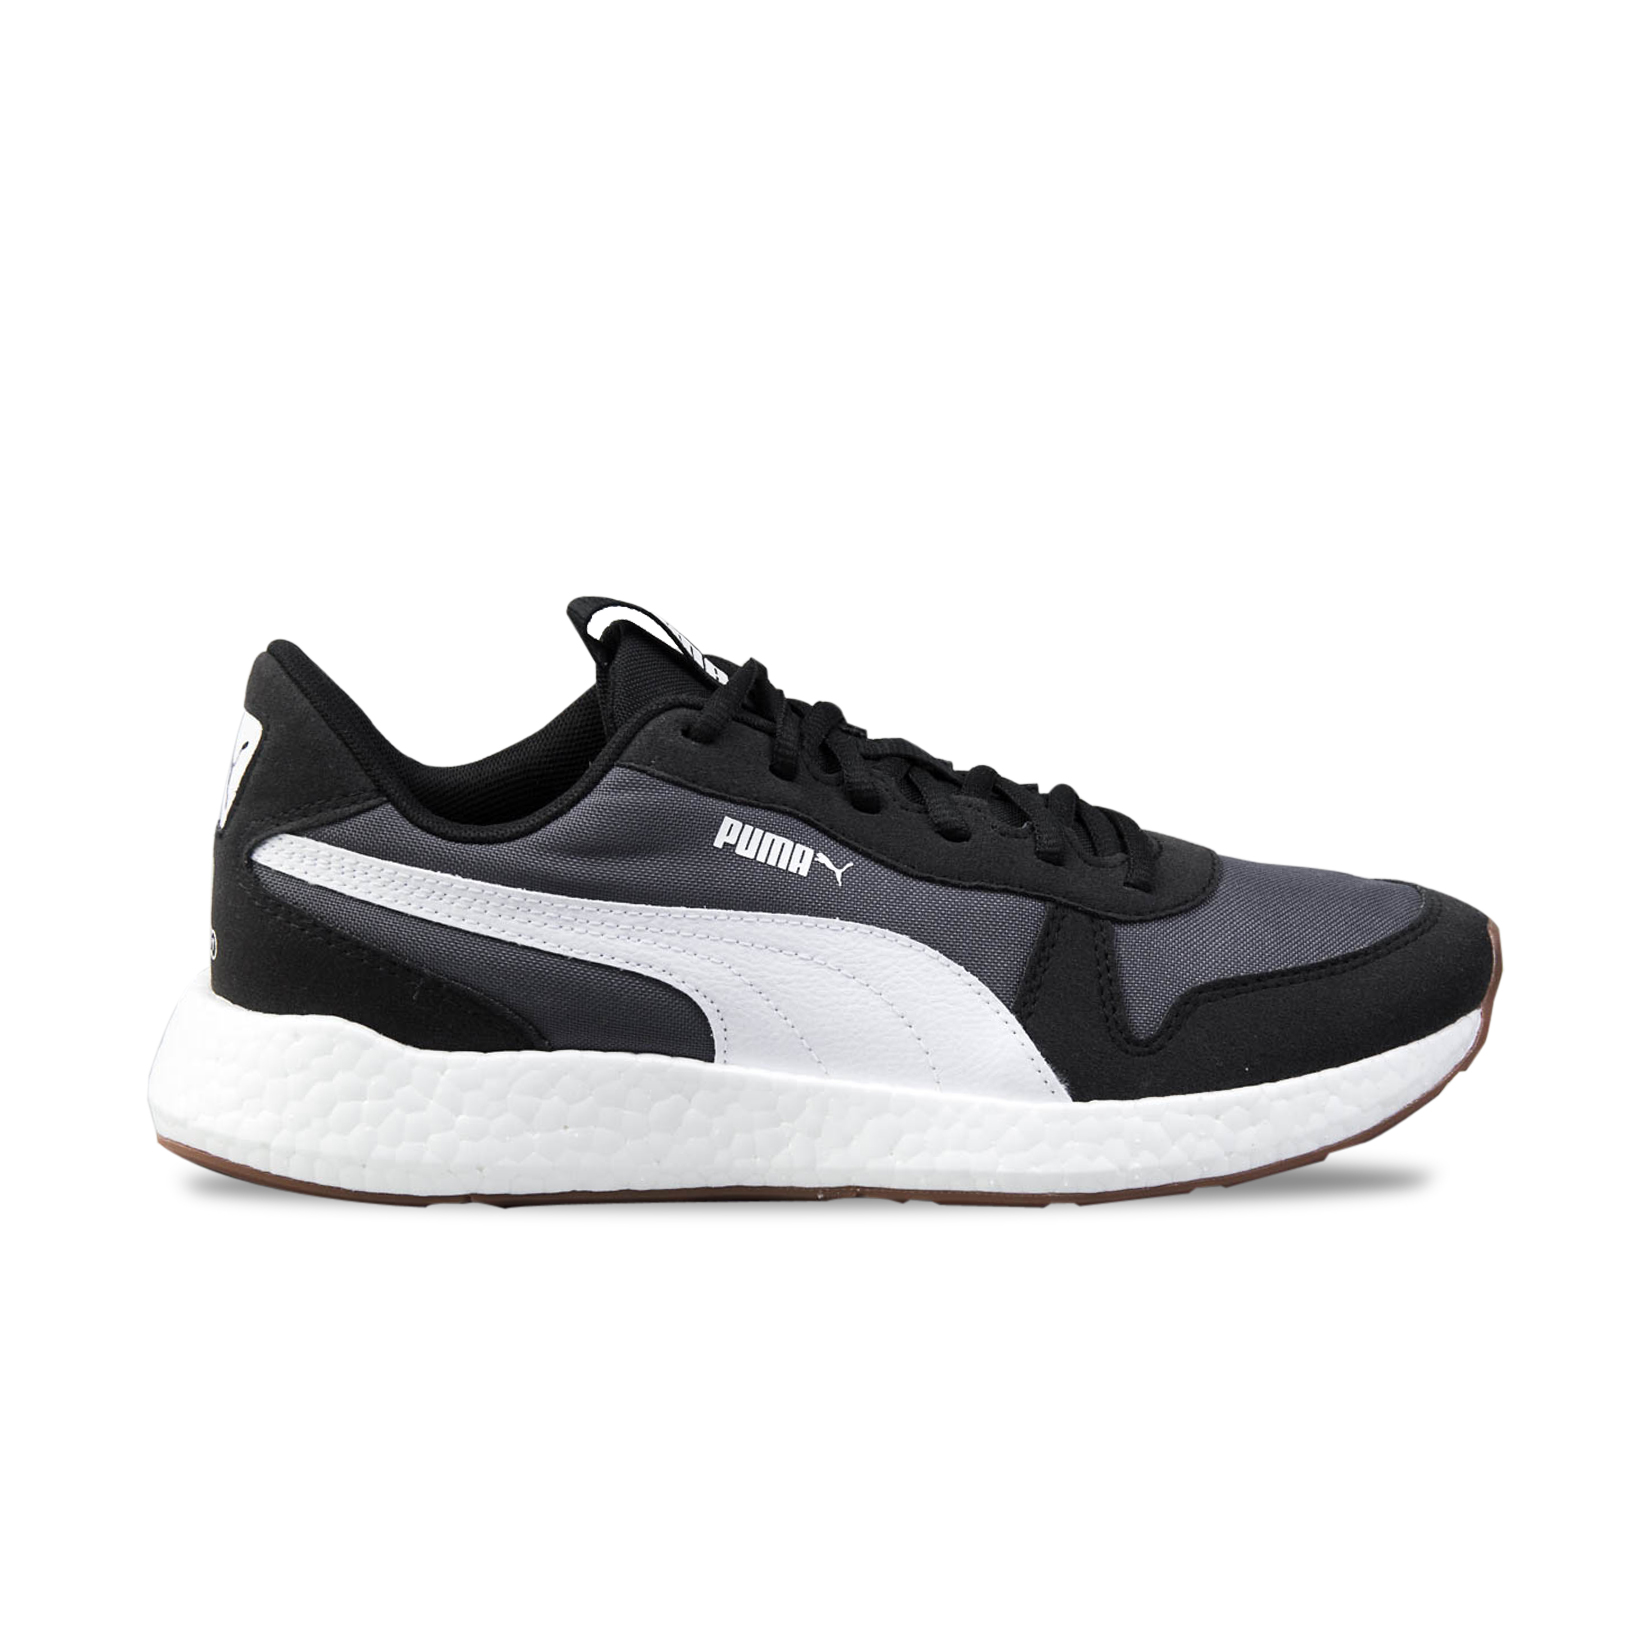 Puma NRGY Neko Retro Black - White